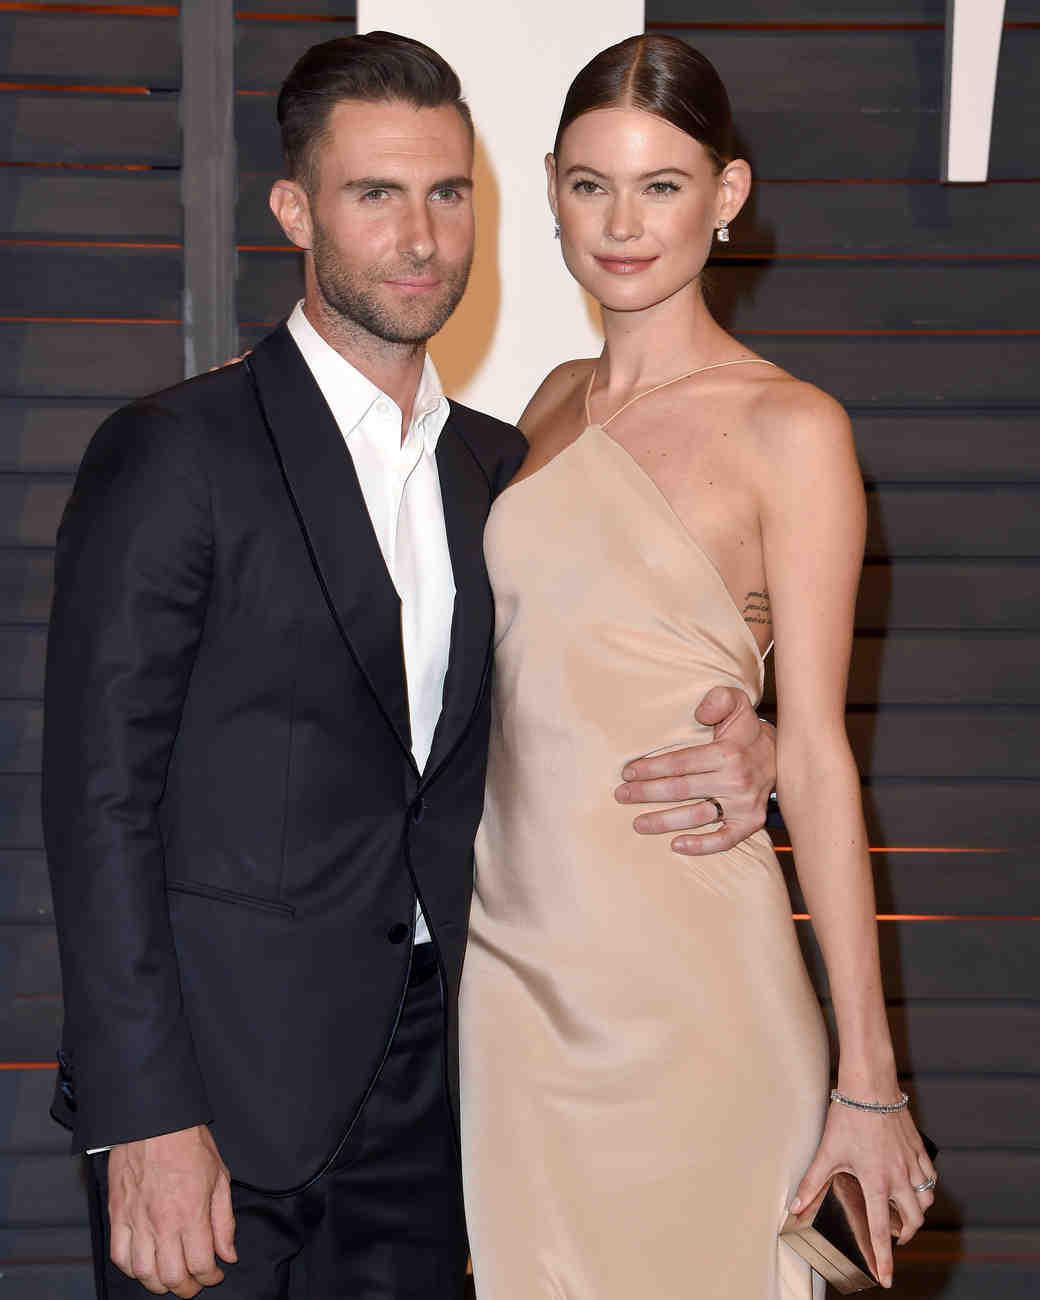 celebrity-couples-adam-levine-behati-prinsloo-0116.jpg